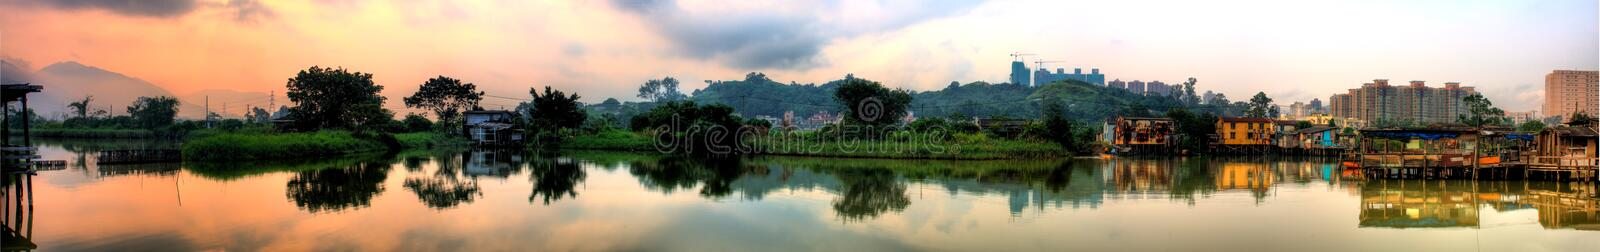 Reflection stock images